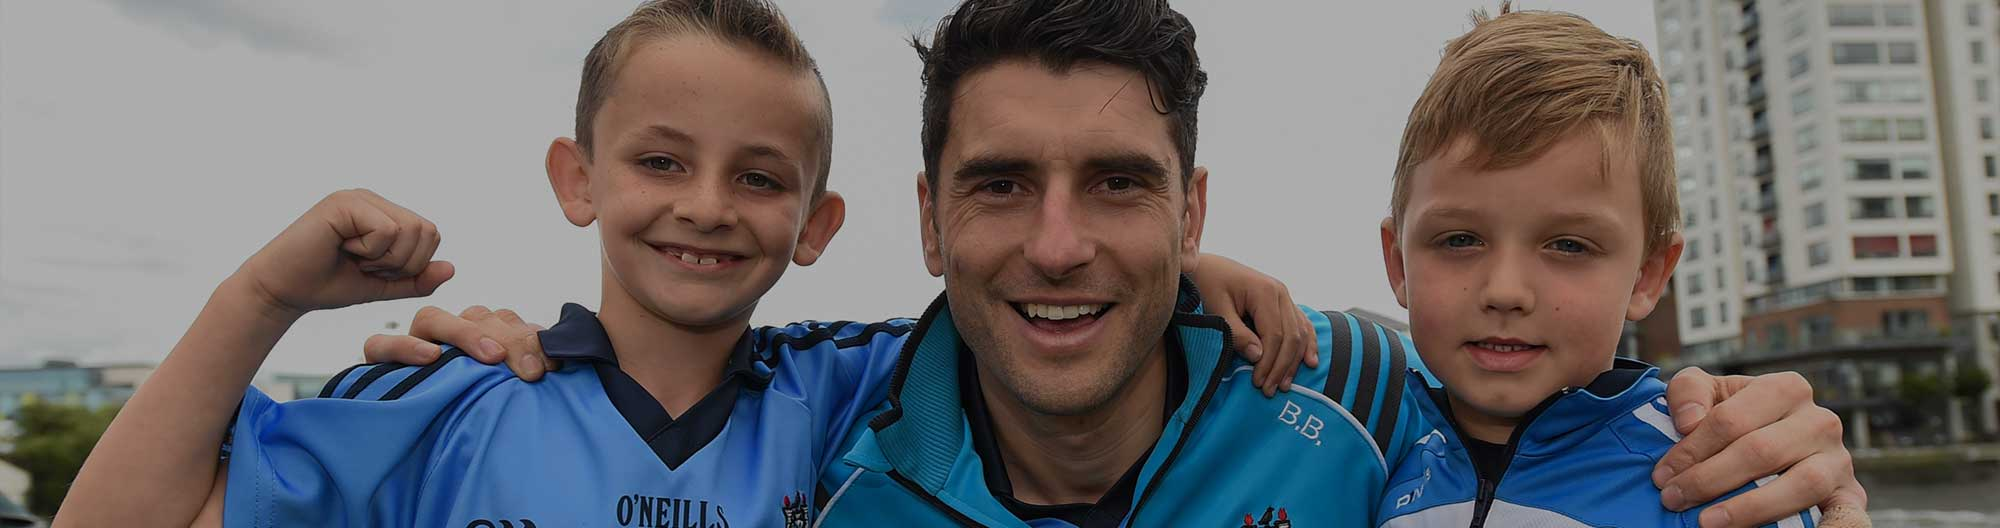 Kids grill Dublin GAA stars at AIG's Dublin jersey promotion launch